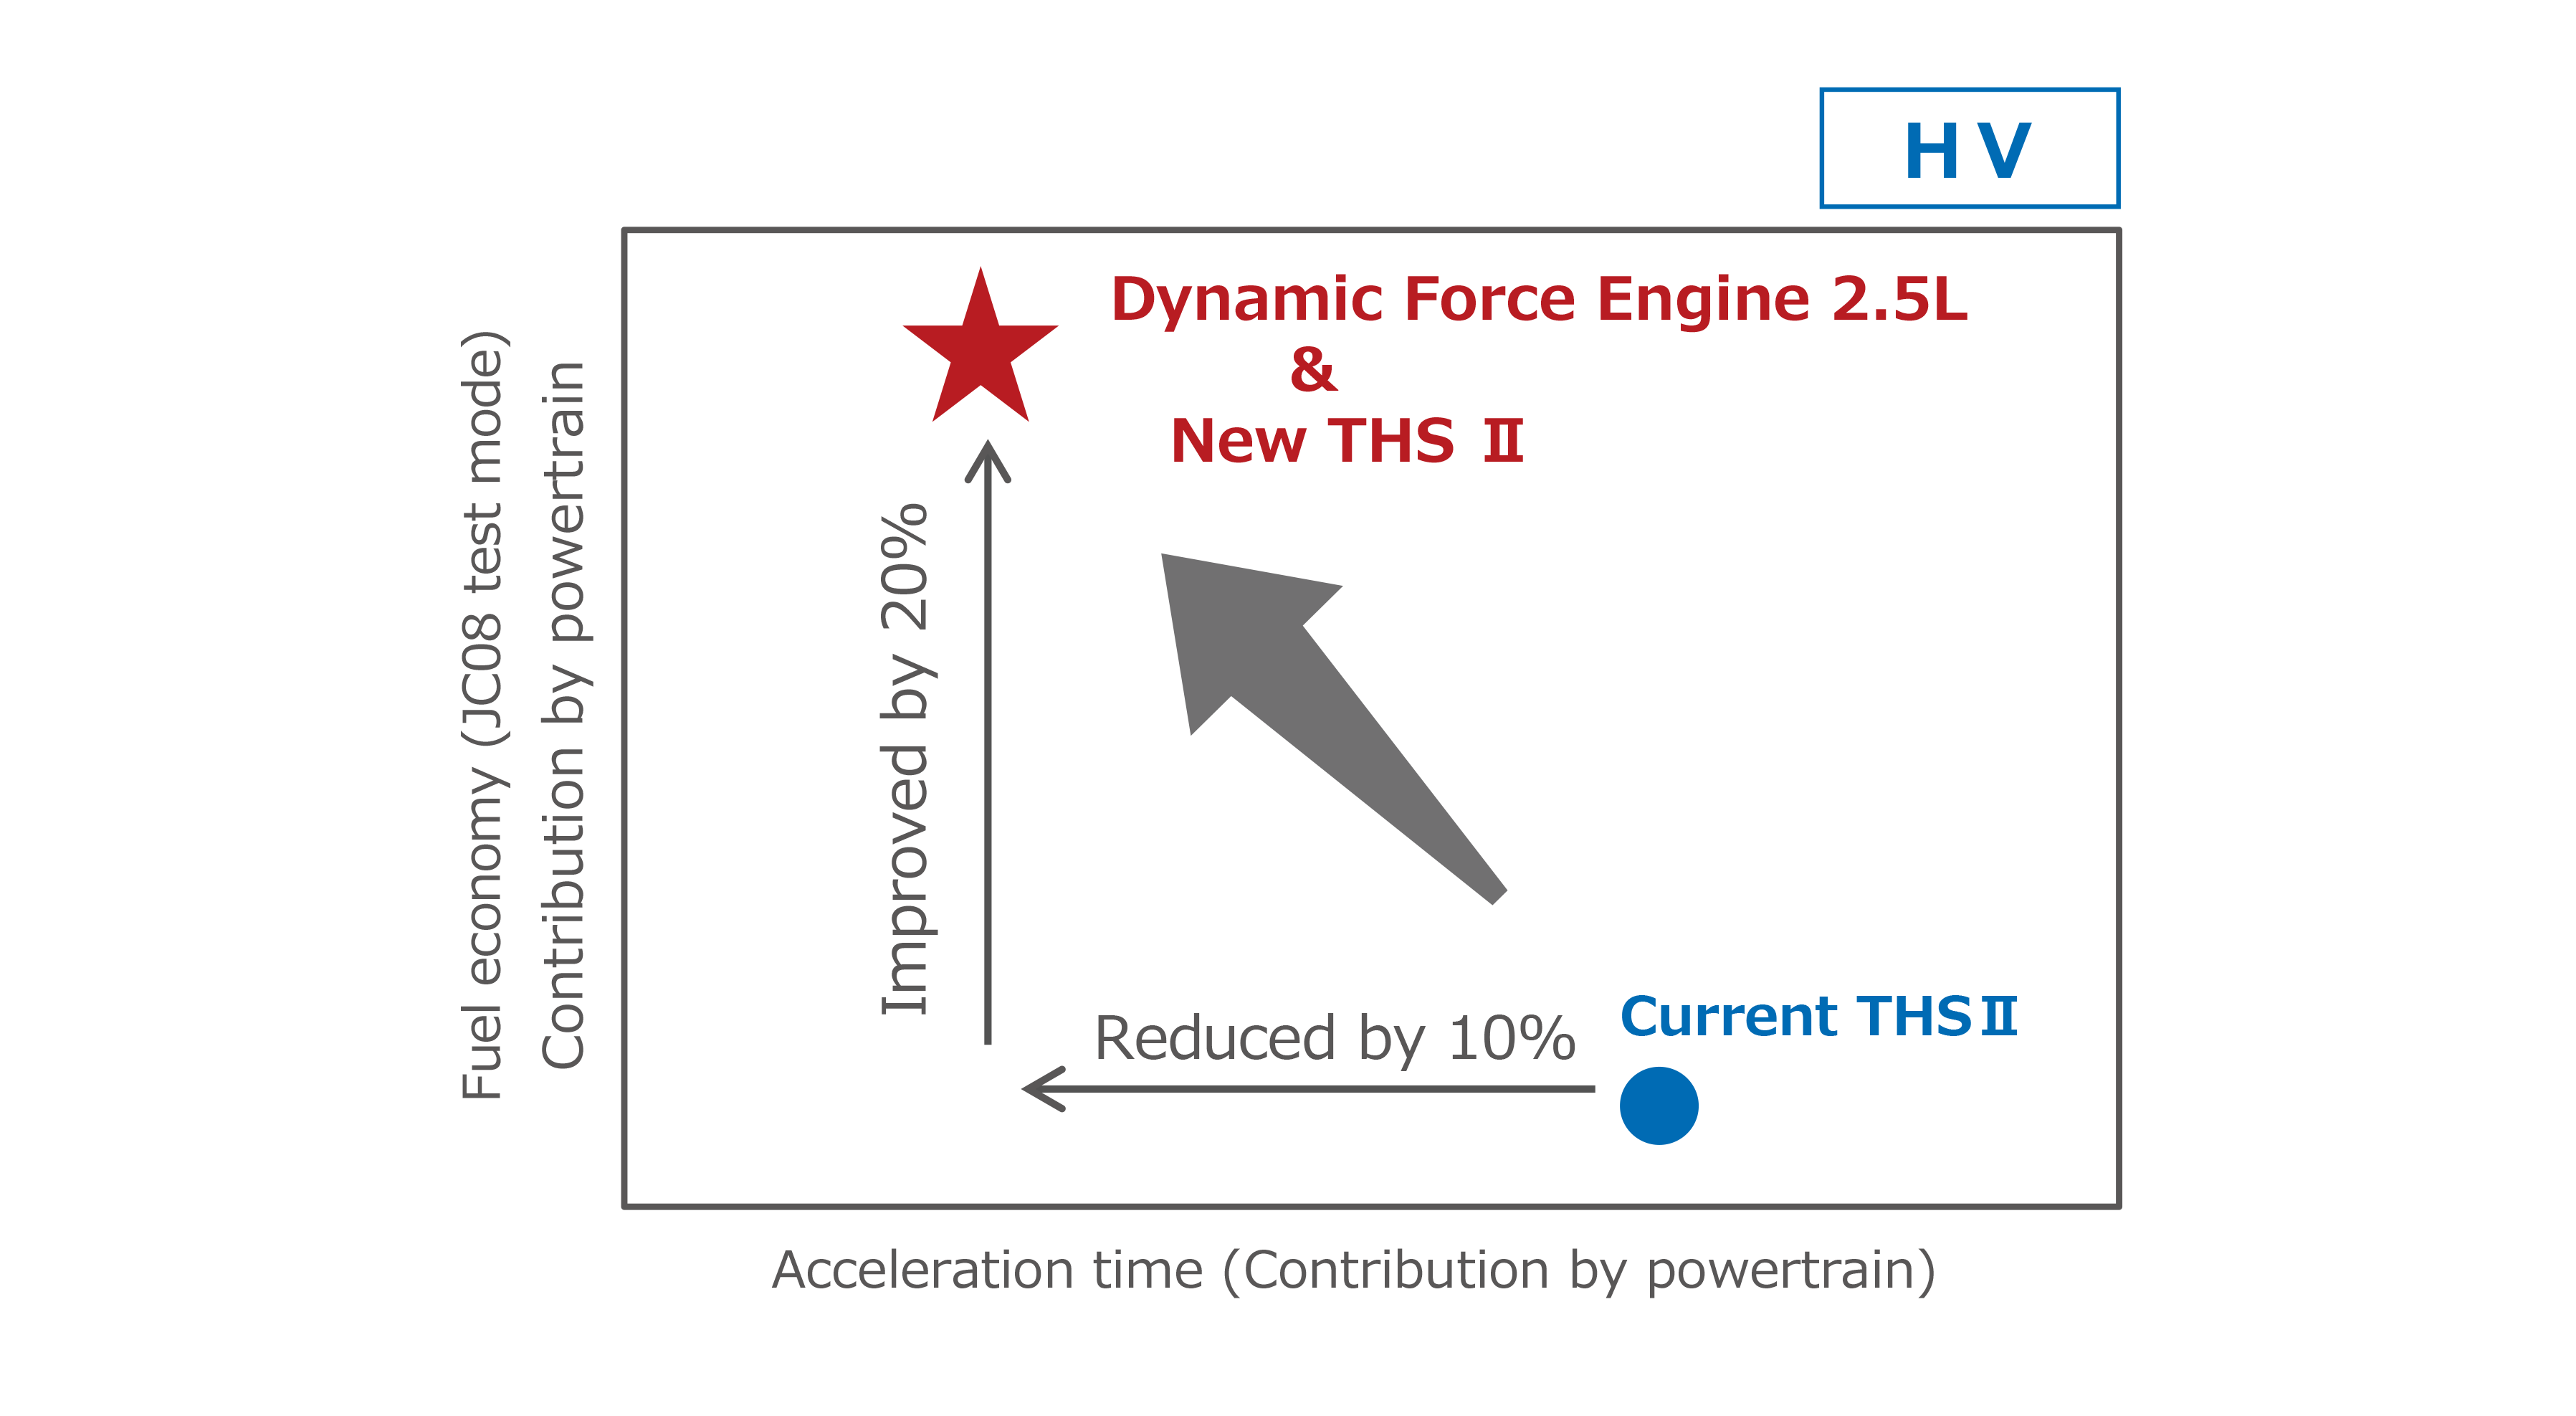 New powertrain contributes to fuel economy and driving performance significantly